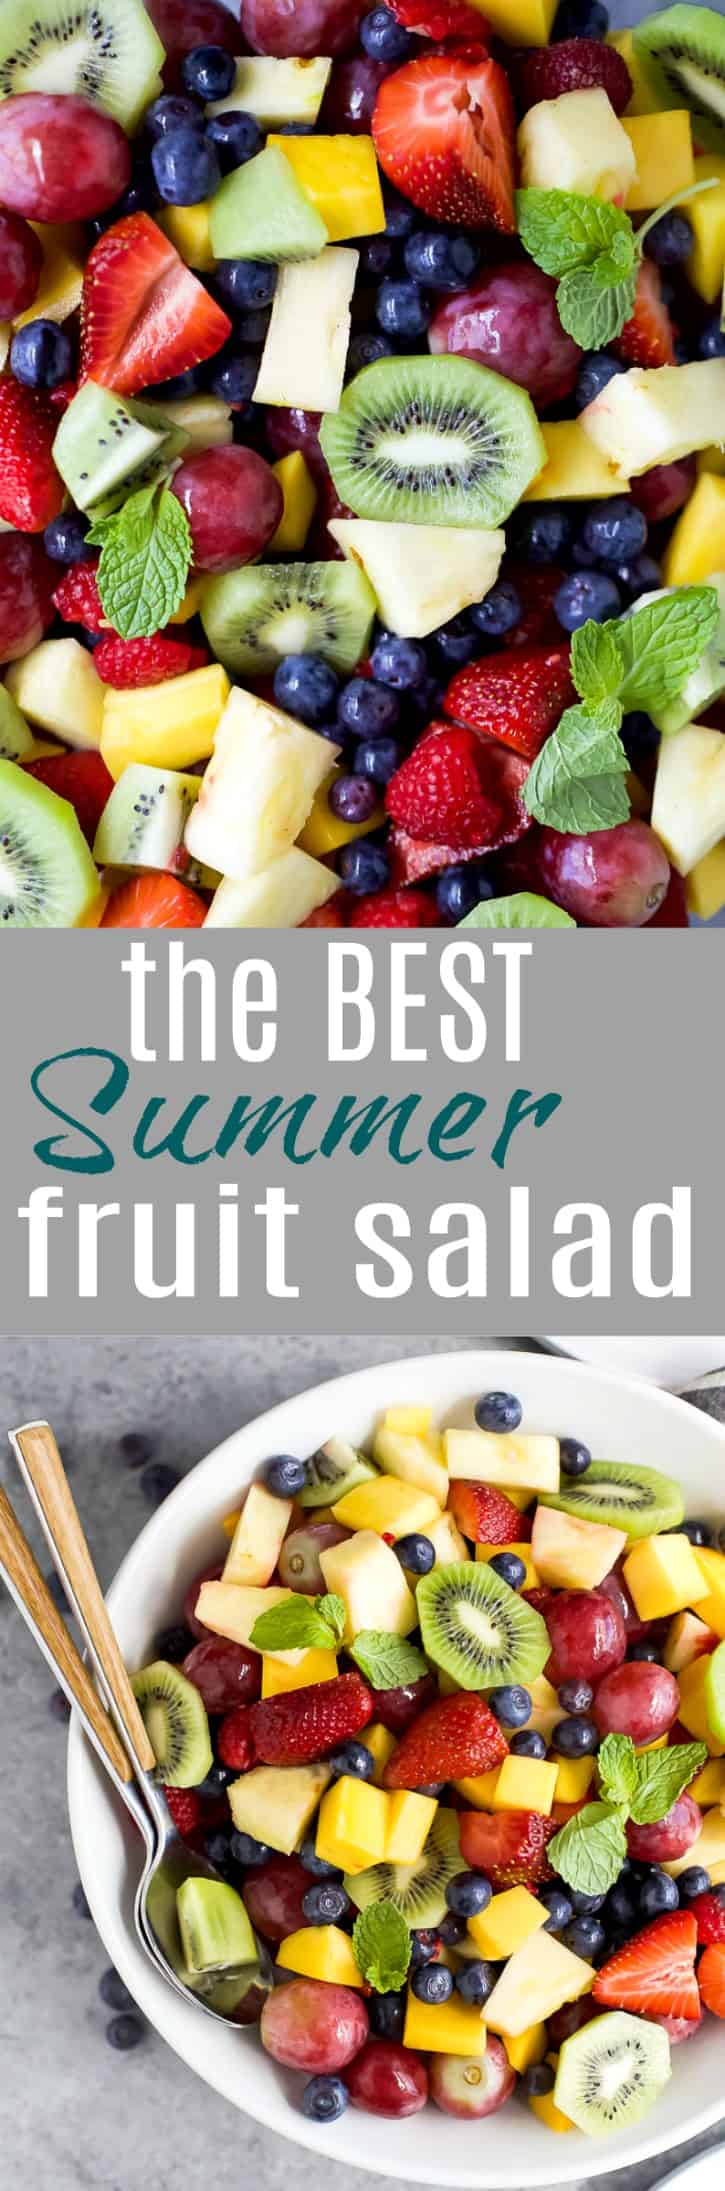 Title Image for The Best Summer Fruit Salad